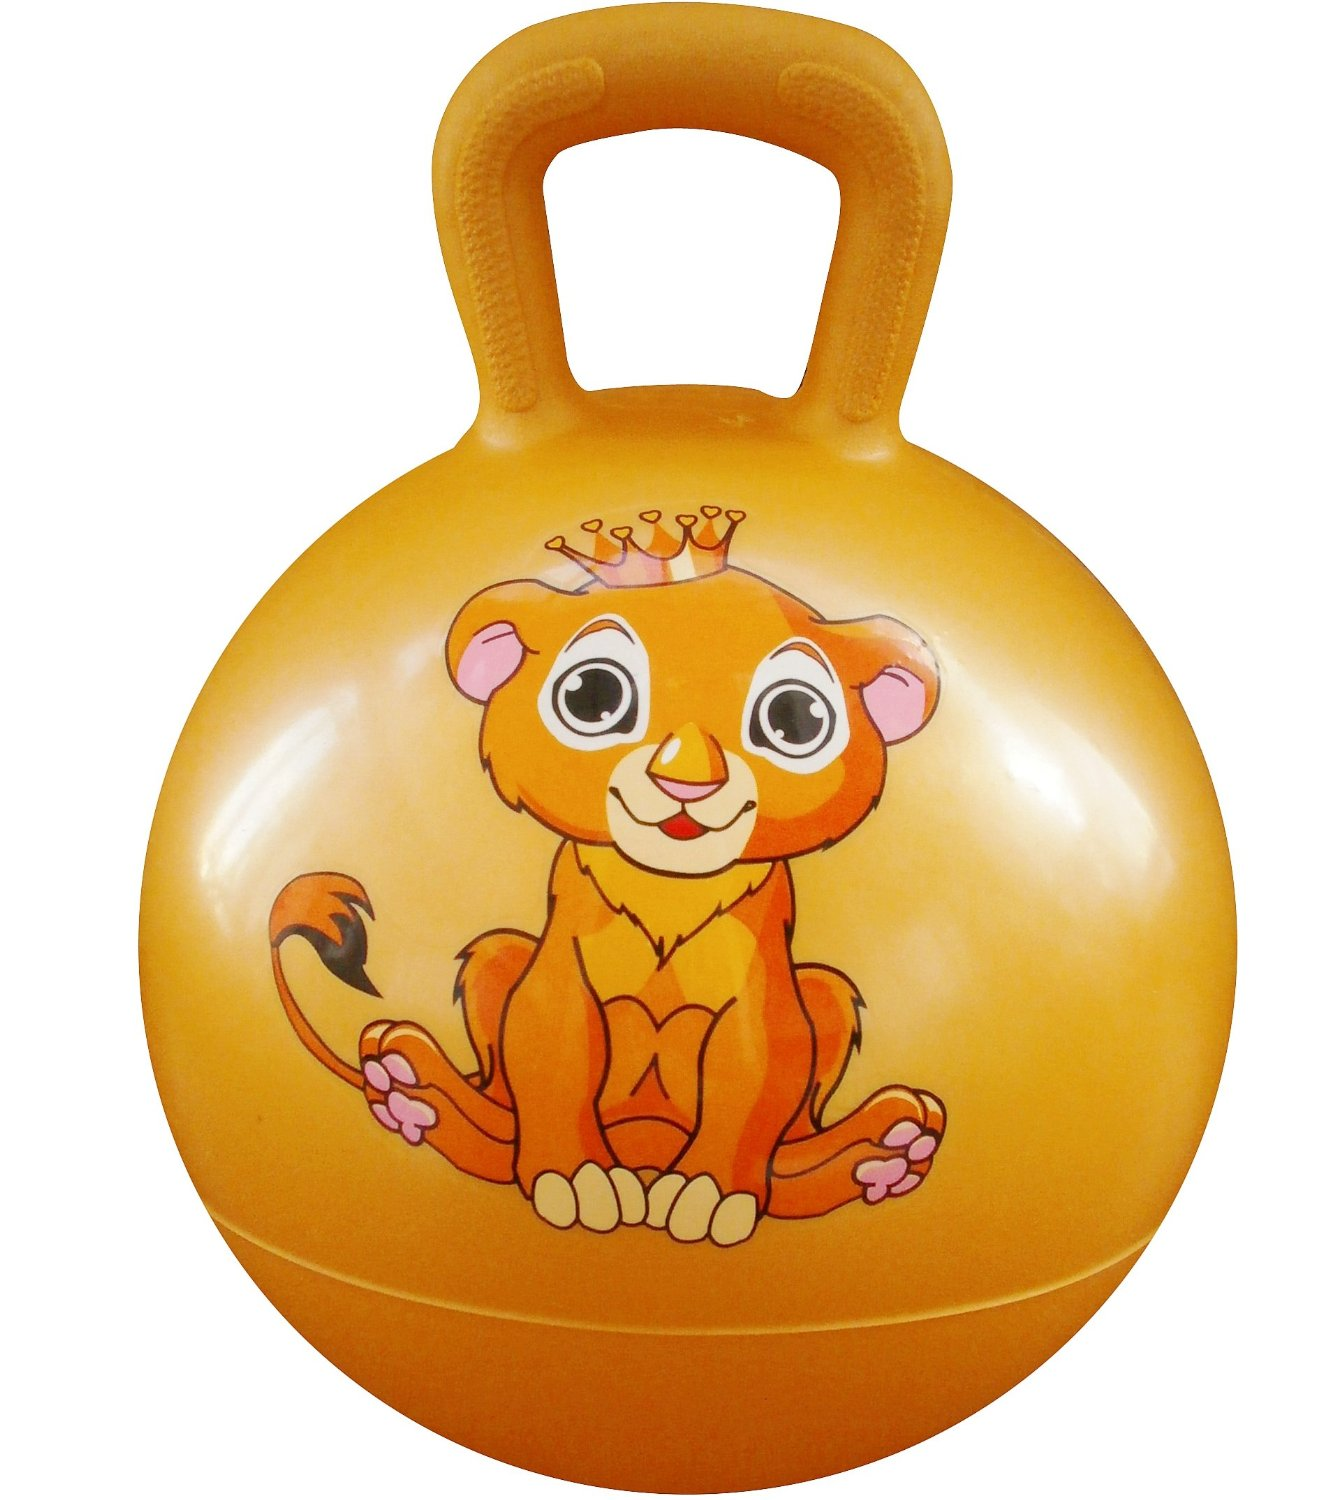 Space Hopper Ball, Bounce and Sport Ball, Bounce and Sport Cars Hopper